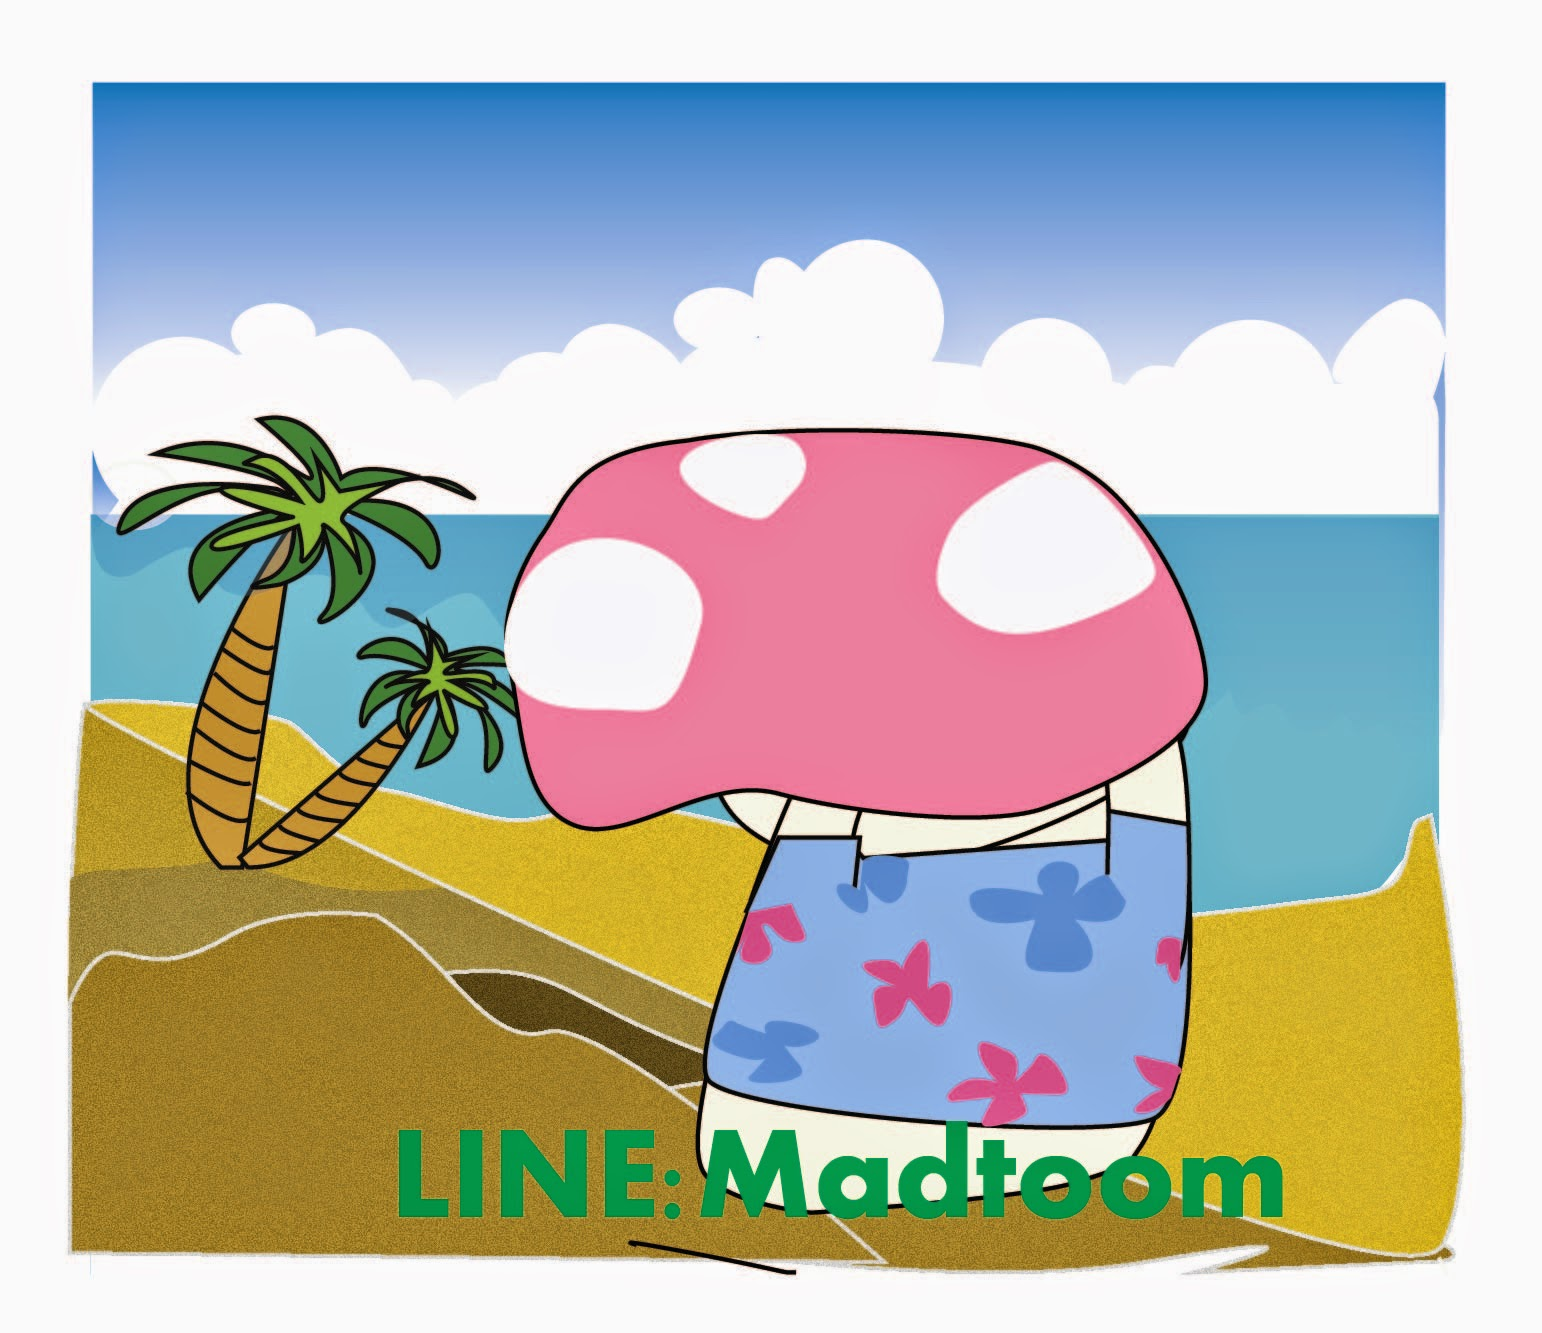 Get line stickers Madtoom